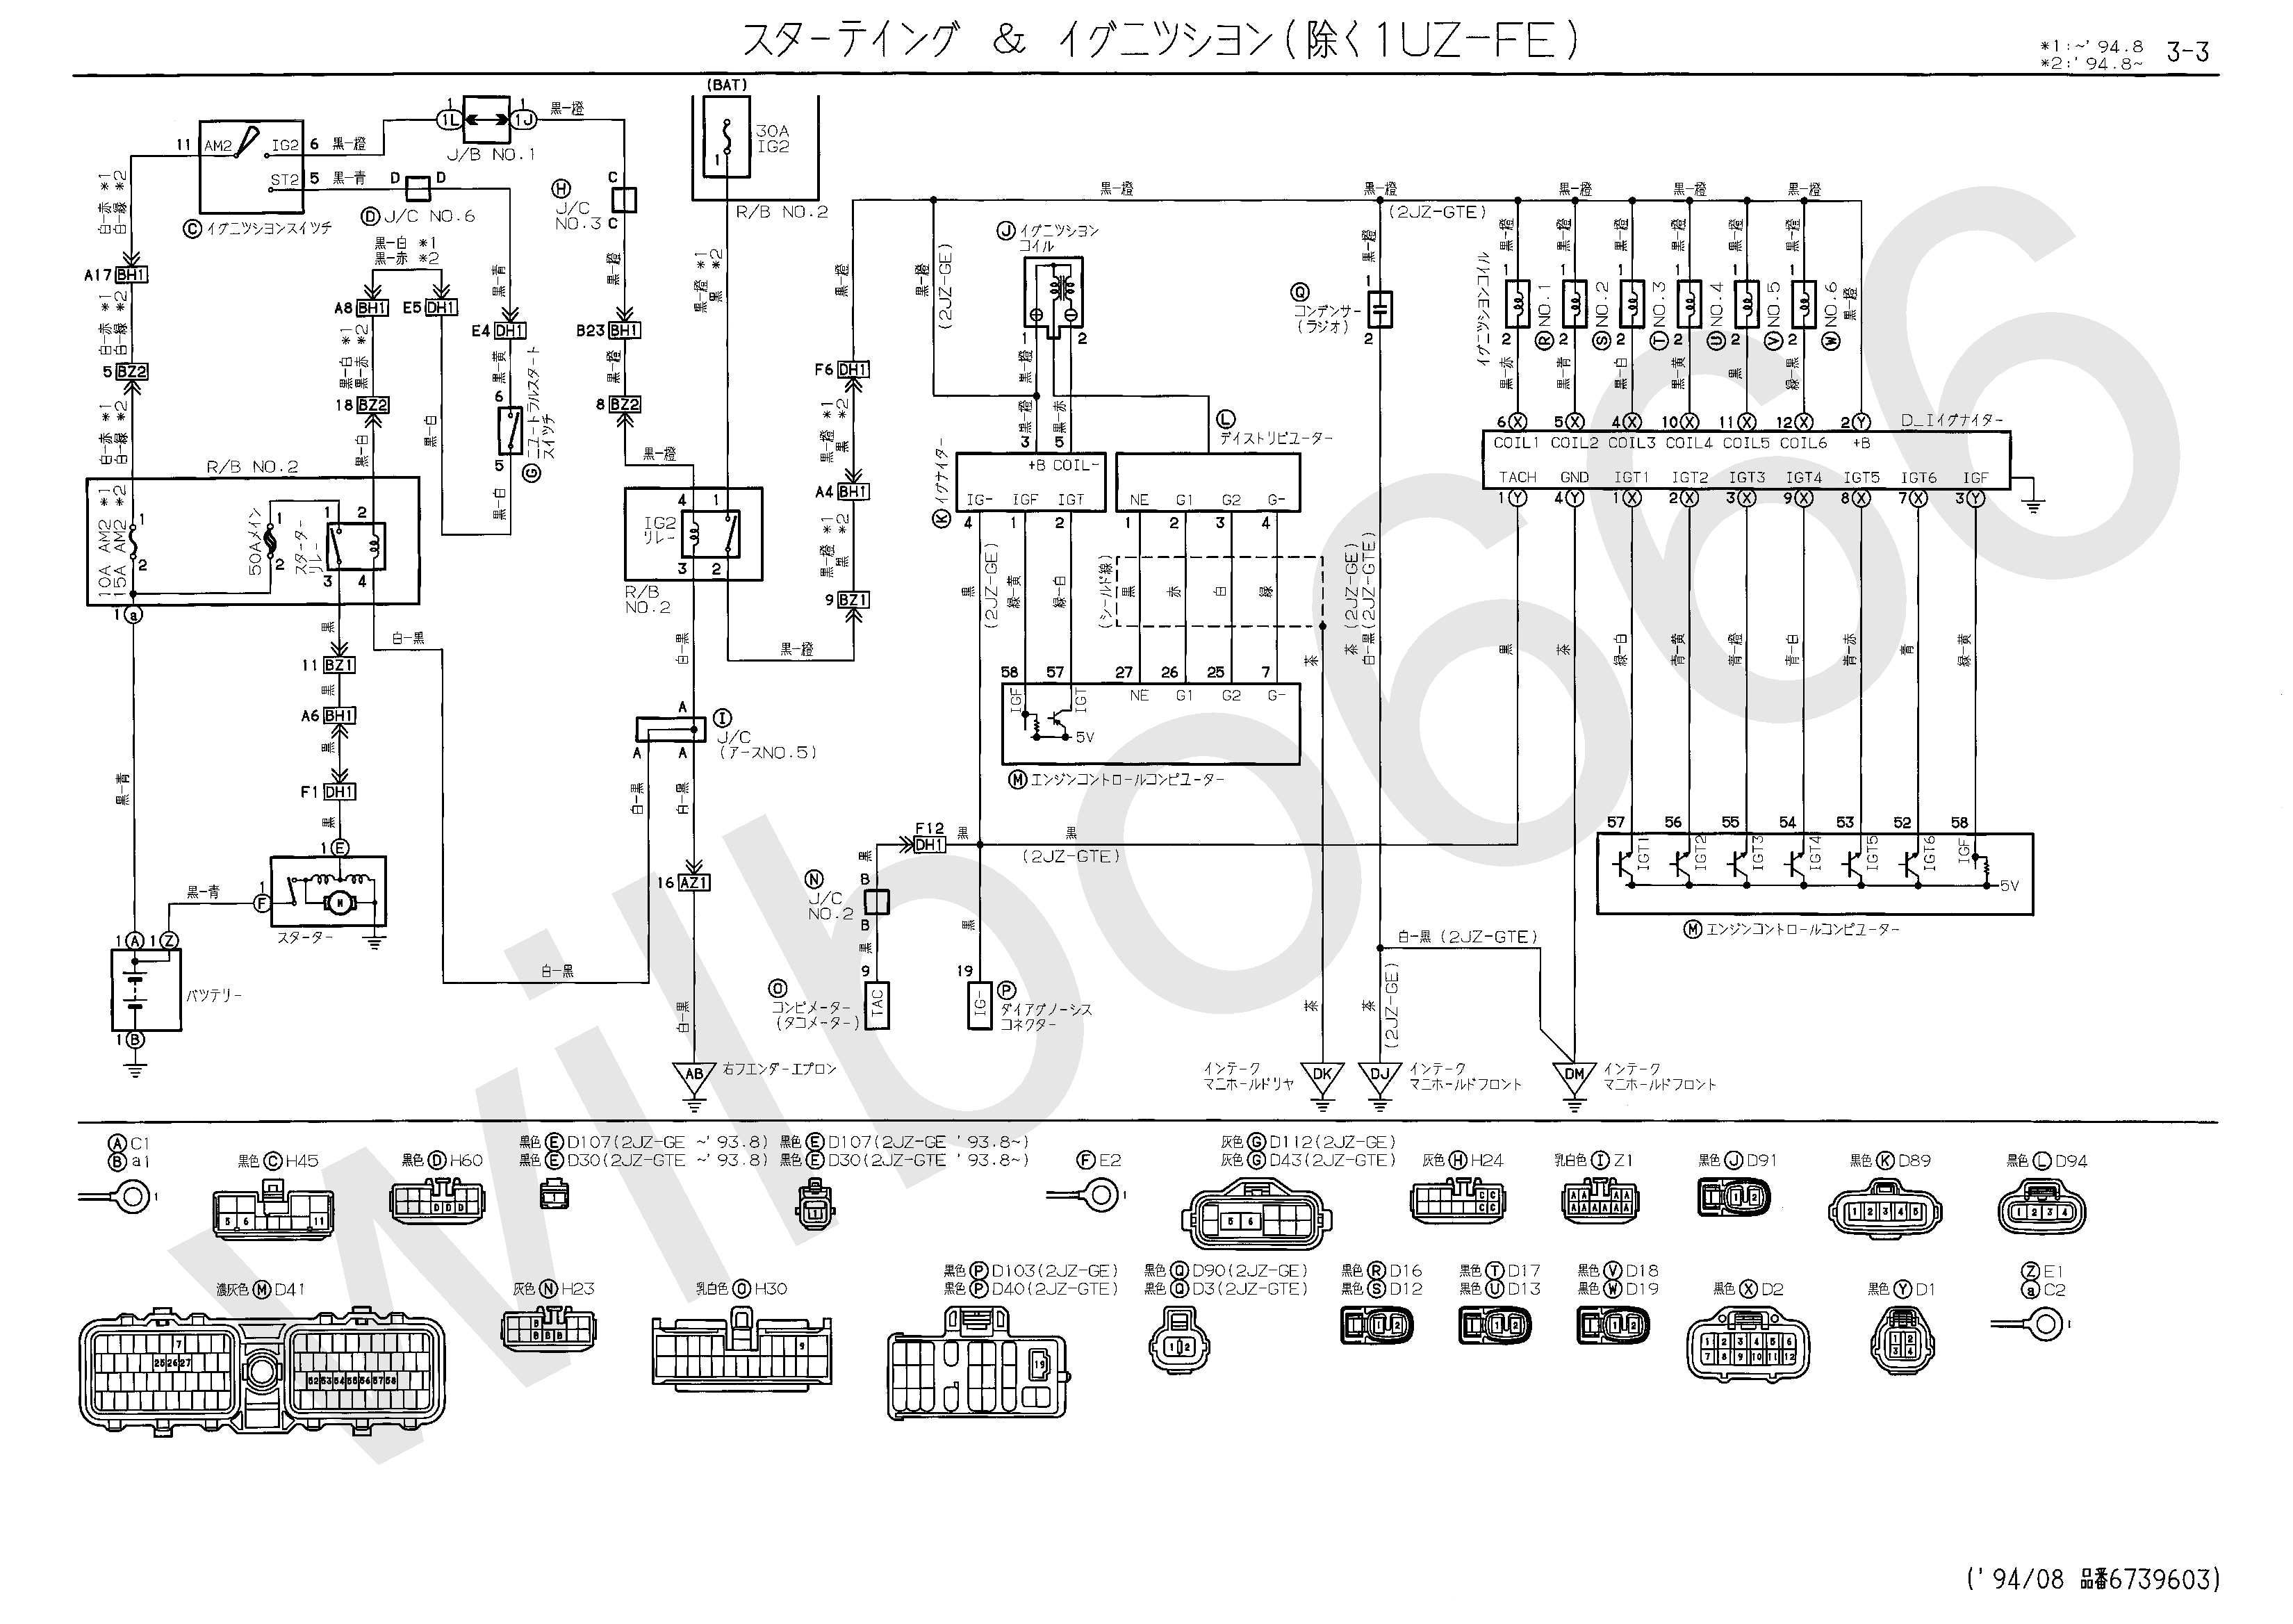 1973 Dodge Challenger Wiring Diagram For Electronic Distributor in addition Ignition Coil Distributor Wiring Diagram To 34crm136   Also And besides 7pabo Buick Special 1965 Buick Special Need Wiring likewise 7aa3d Adjust Sliding Door Town Country Van likewise Mercury Black Max 200 Wiring Diagram. on buick wiring diagram